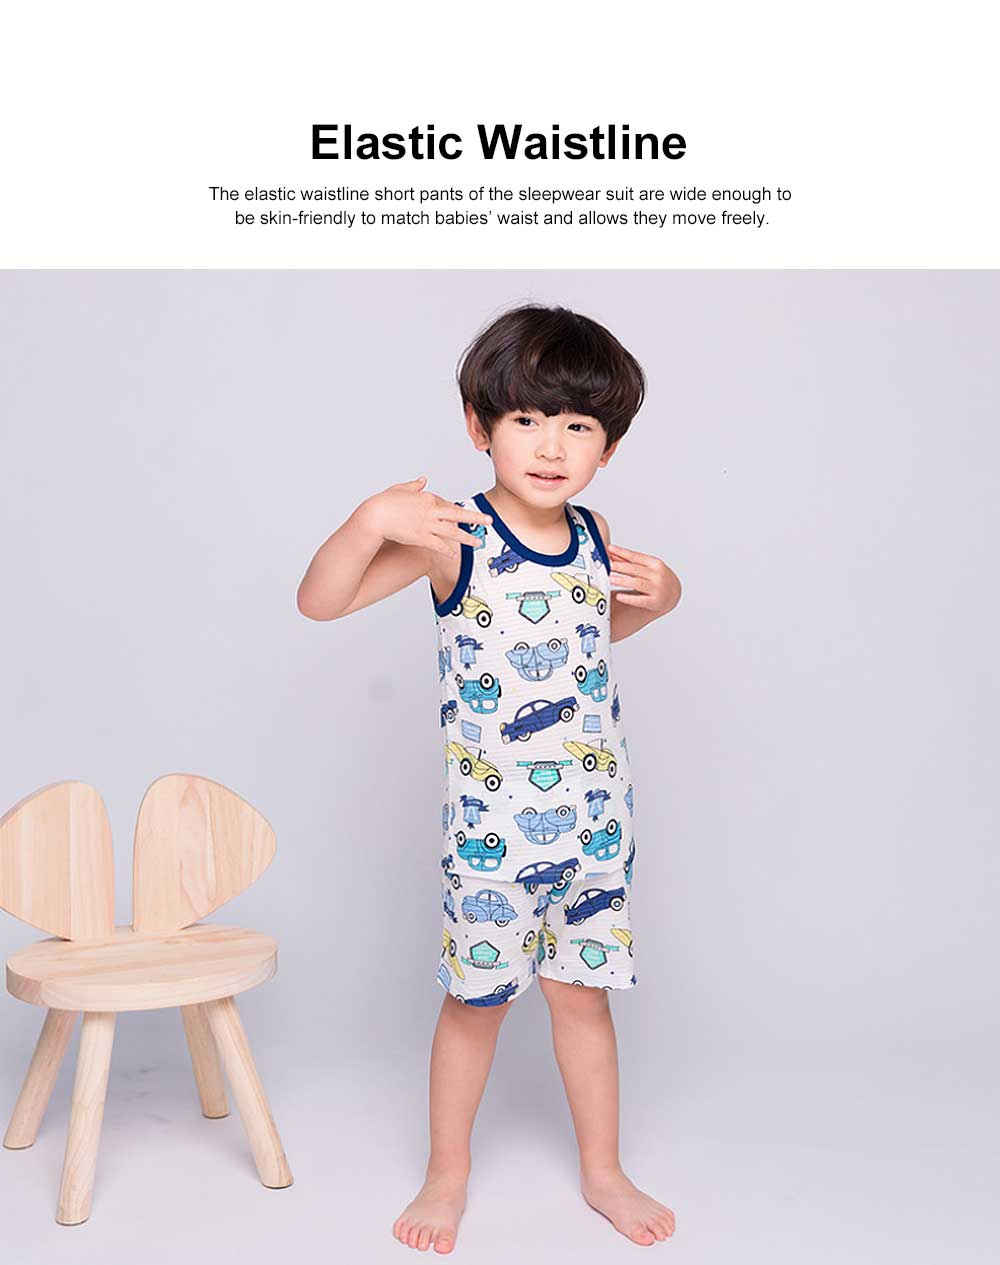 Pure Cotton Sleepwear Suit with Cartoon Patterns for Children, Summer Unisex Loungewear & Pajamas Short Sleeve Underwear Suit for Boys Girls 3